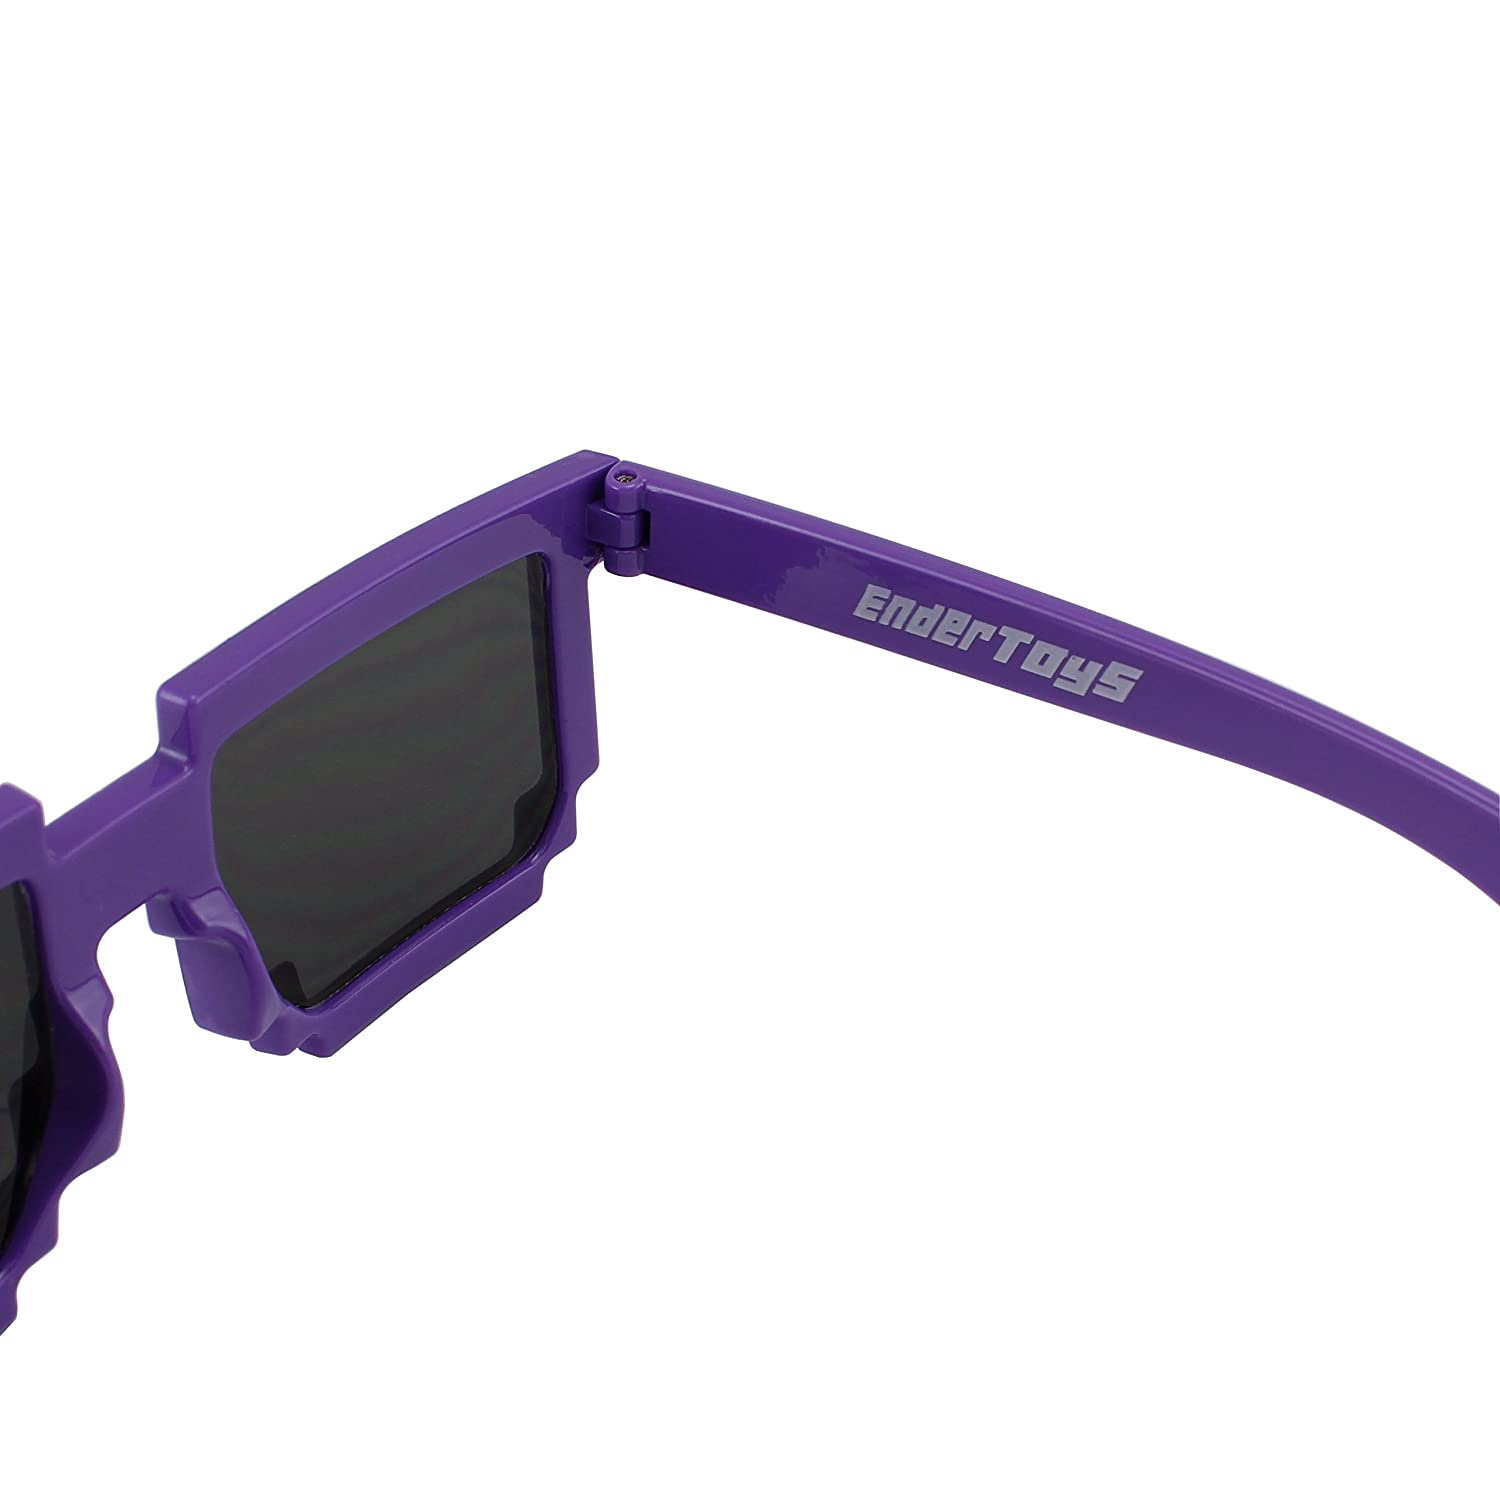 Pixel Kids Sunglasses Novelty Retro Gamer Geek Glasses for Boys and Girls Ages 6 Purple by EnderToys